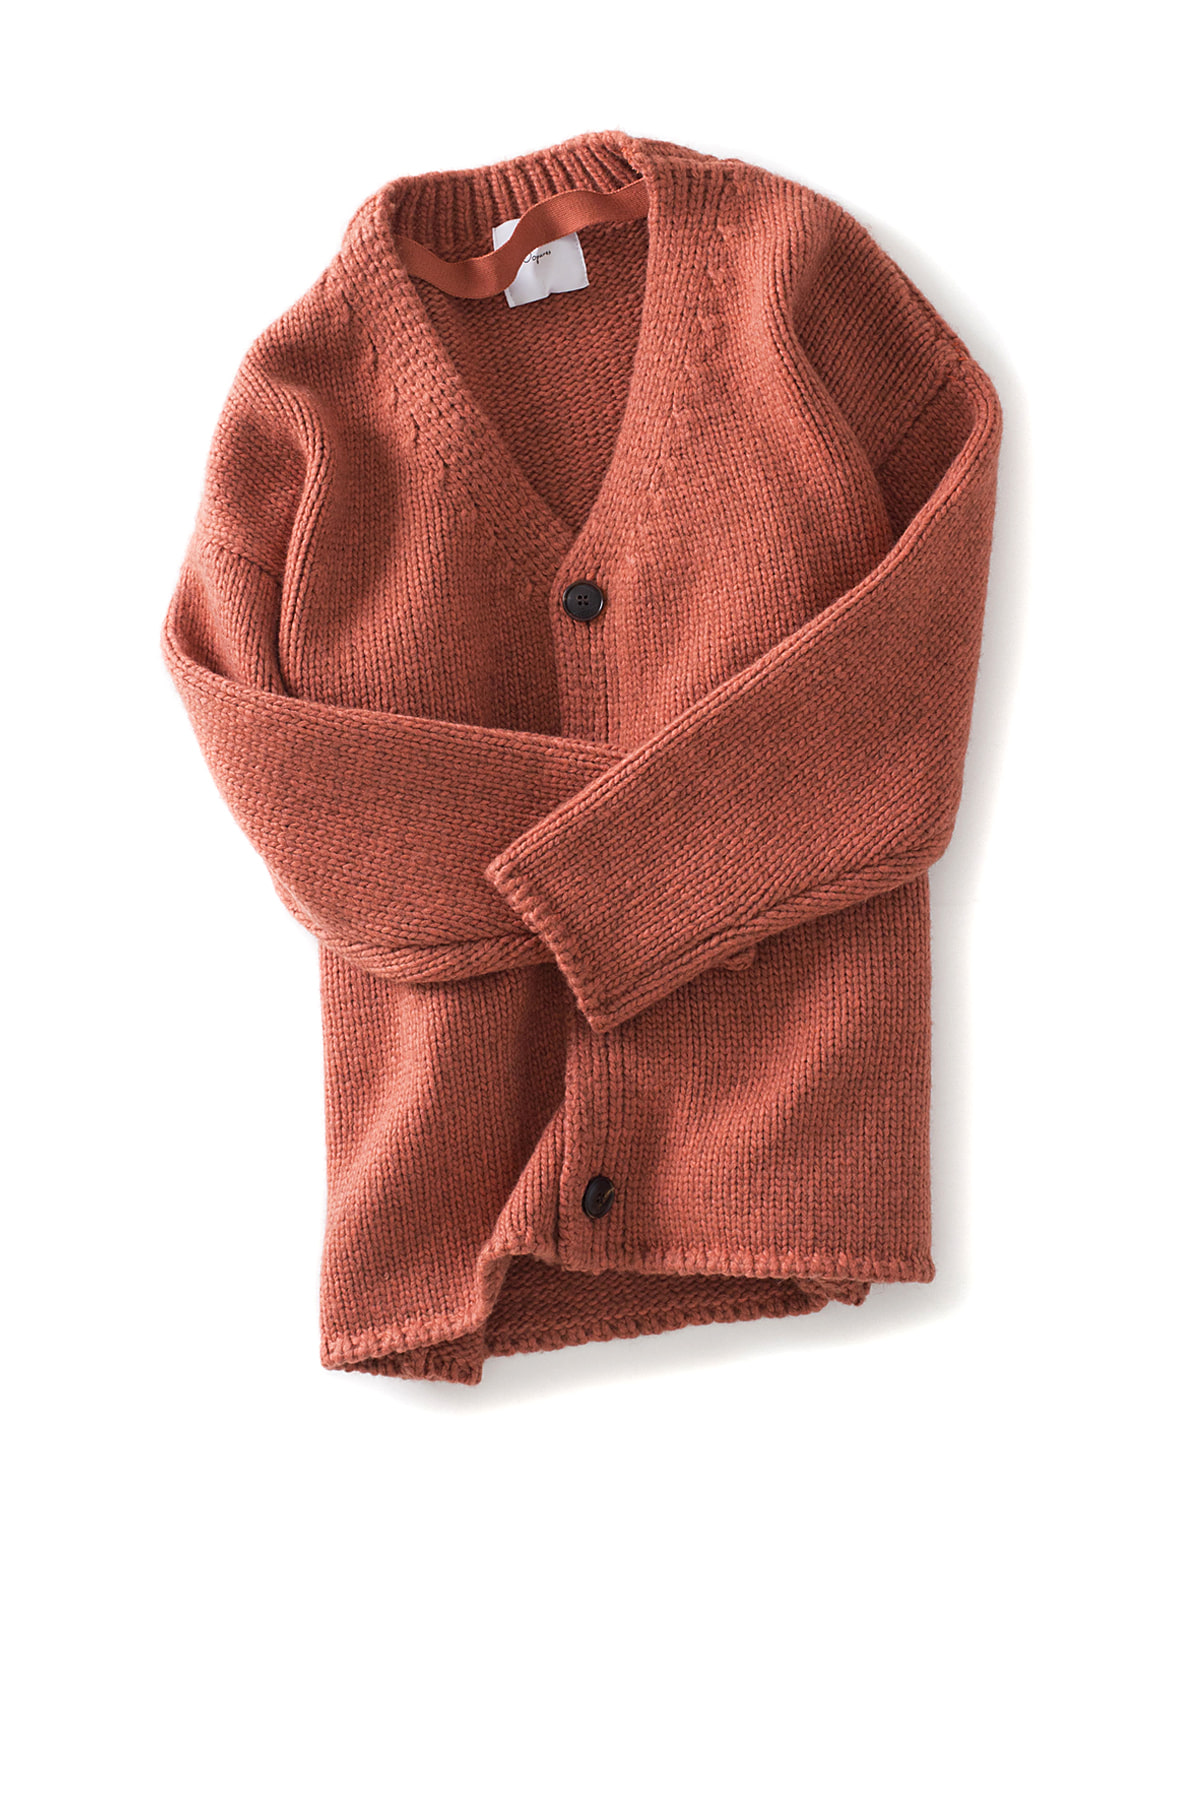 Ooparts : Dropped-Shoulder Cardigan (Indi Pink)